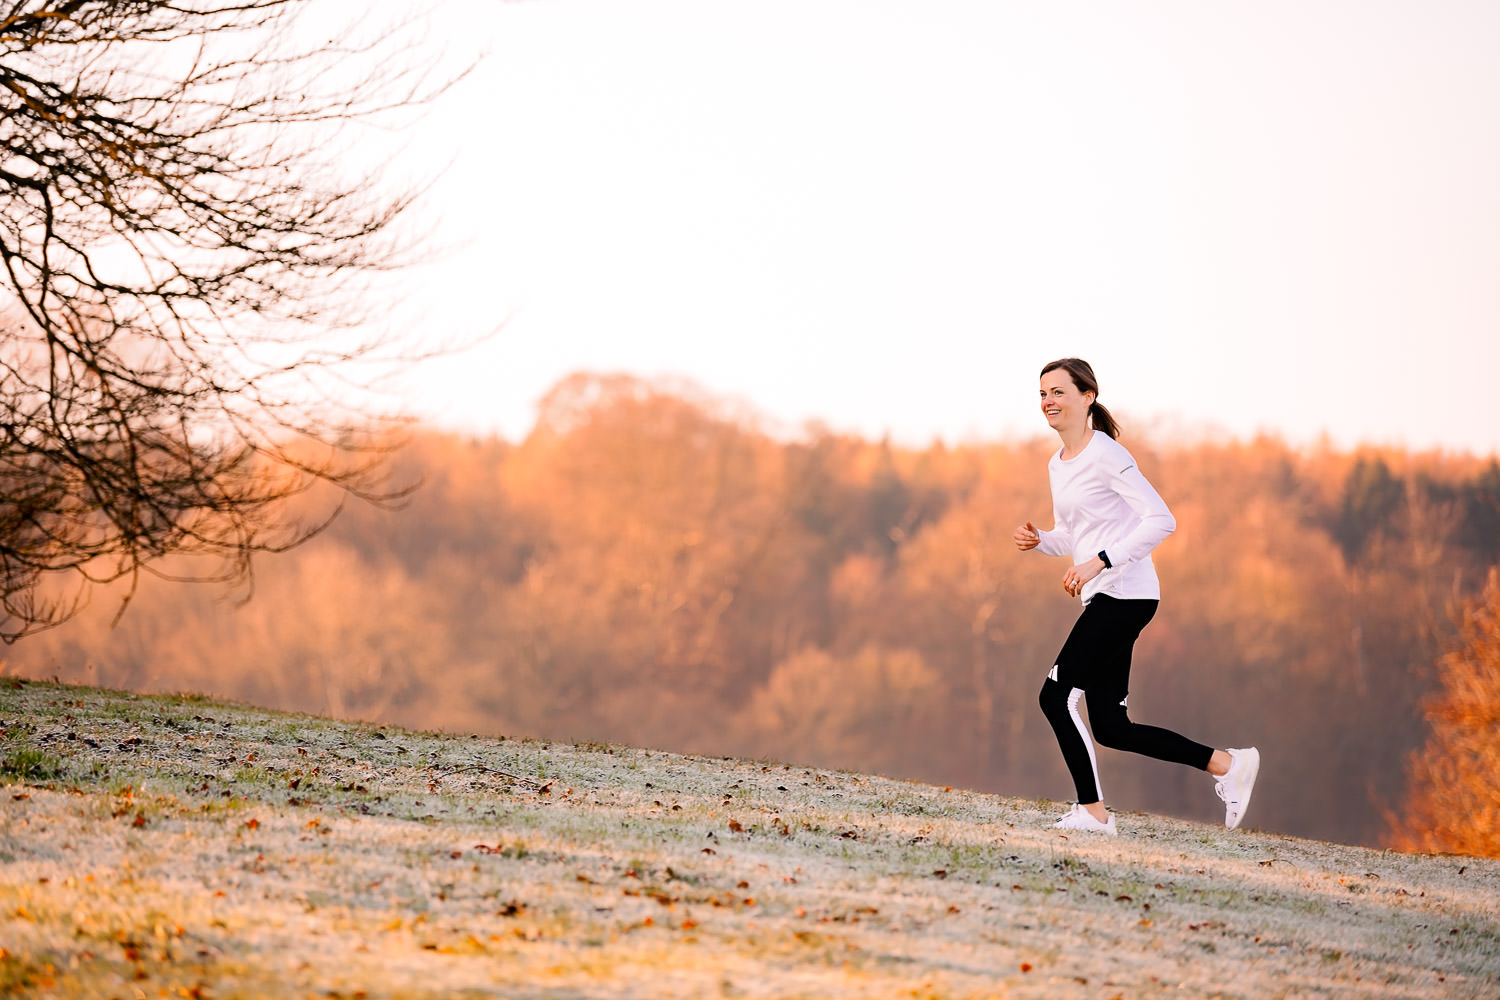 Lady running up a grass hill on a frosty day with autumnal leaves in the background